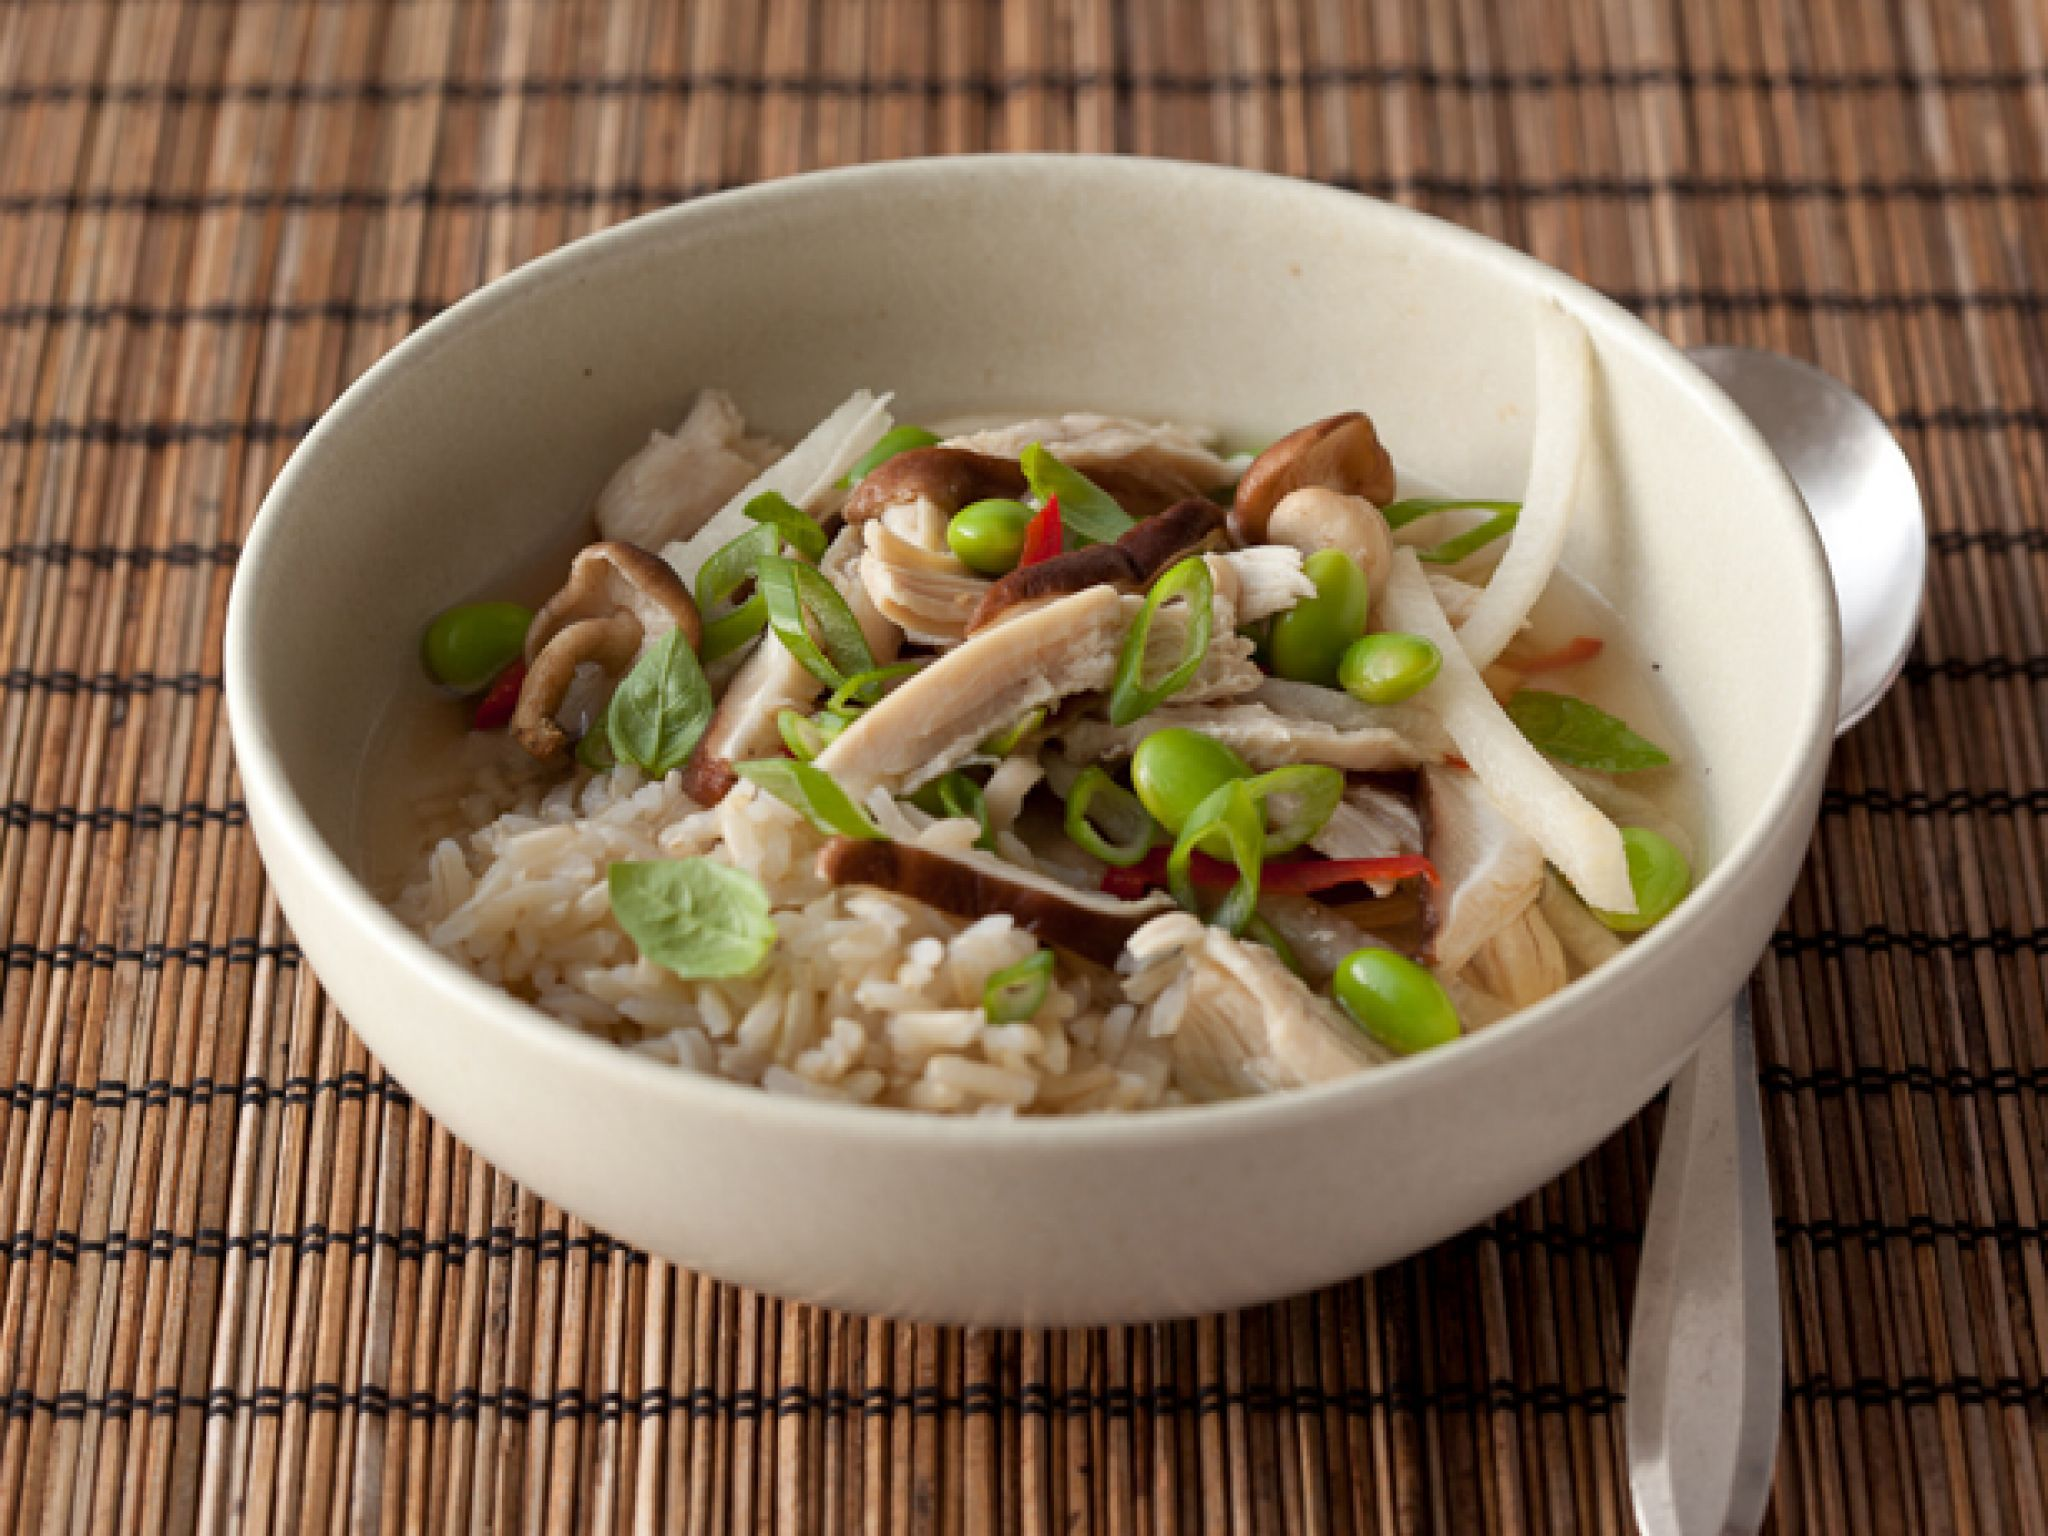 Healthy chinese recipes food network chicken breasts rice and healthy chinese recipes food network forumfinder Gallery